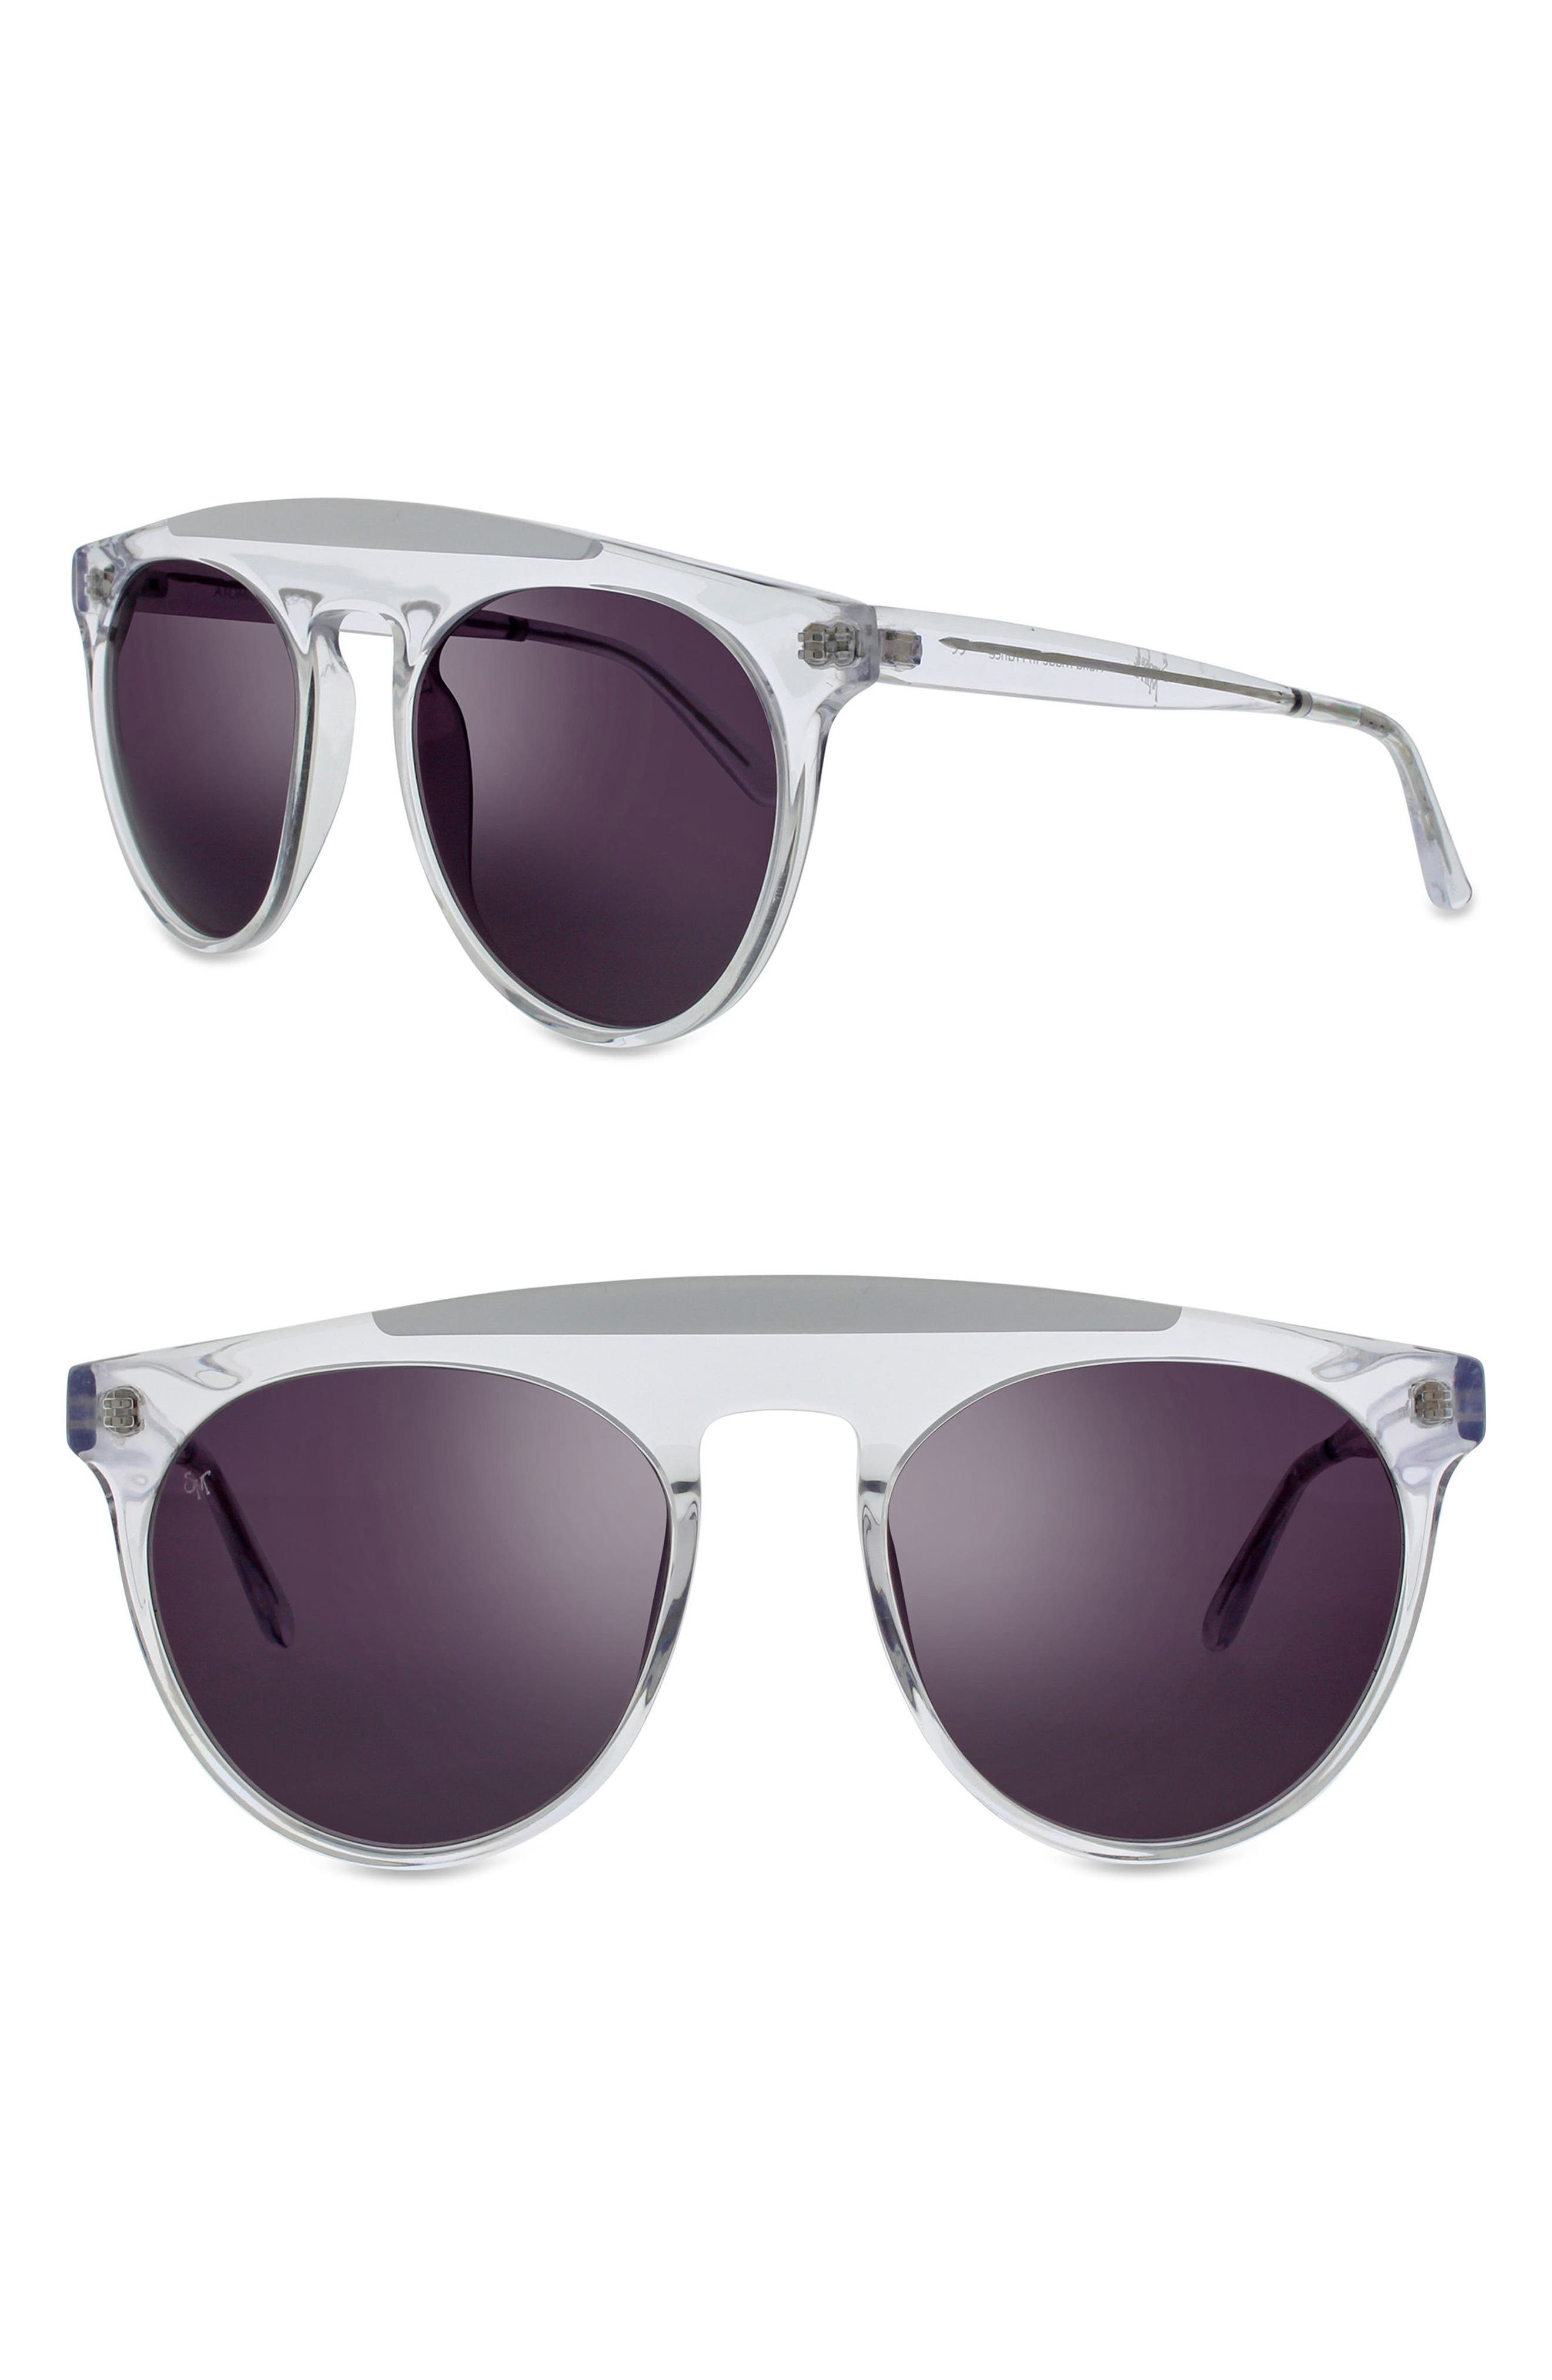 Atomic 52mm Round Sunglasses,                         Main,                         color, Crystal/ White